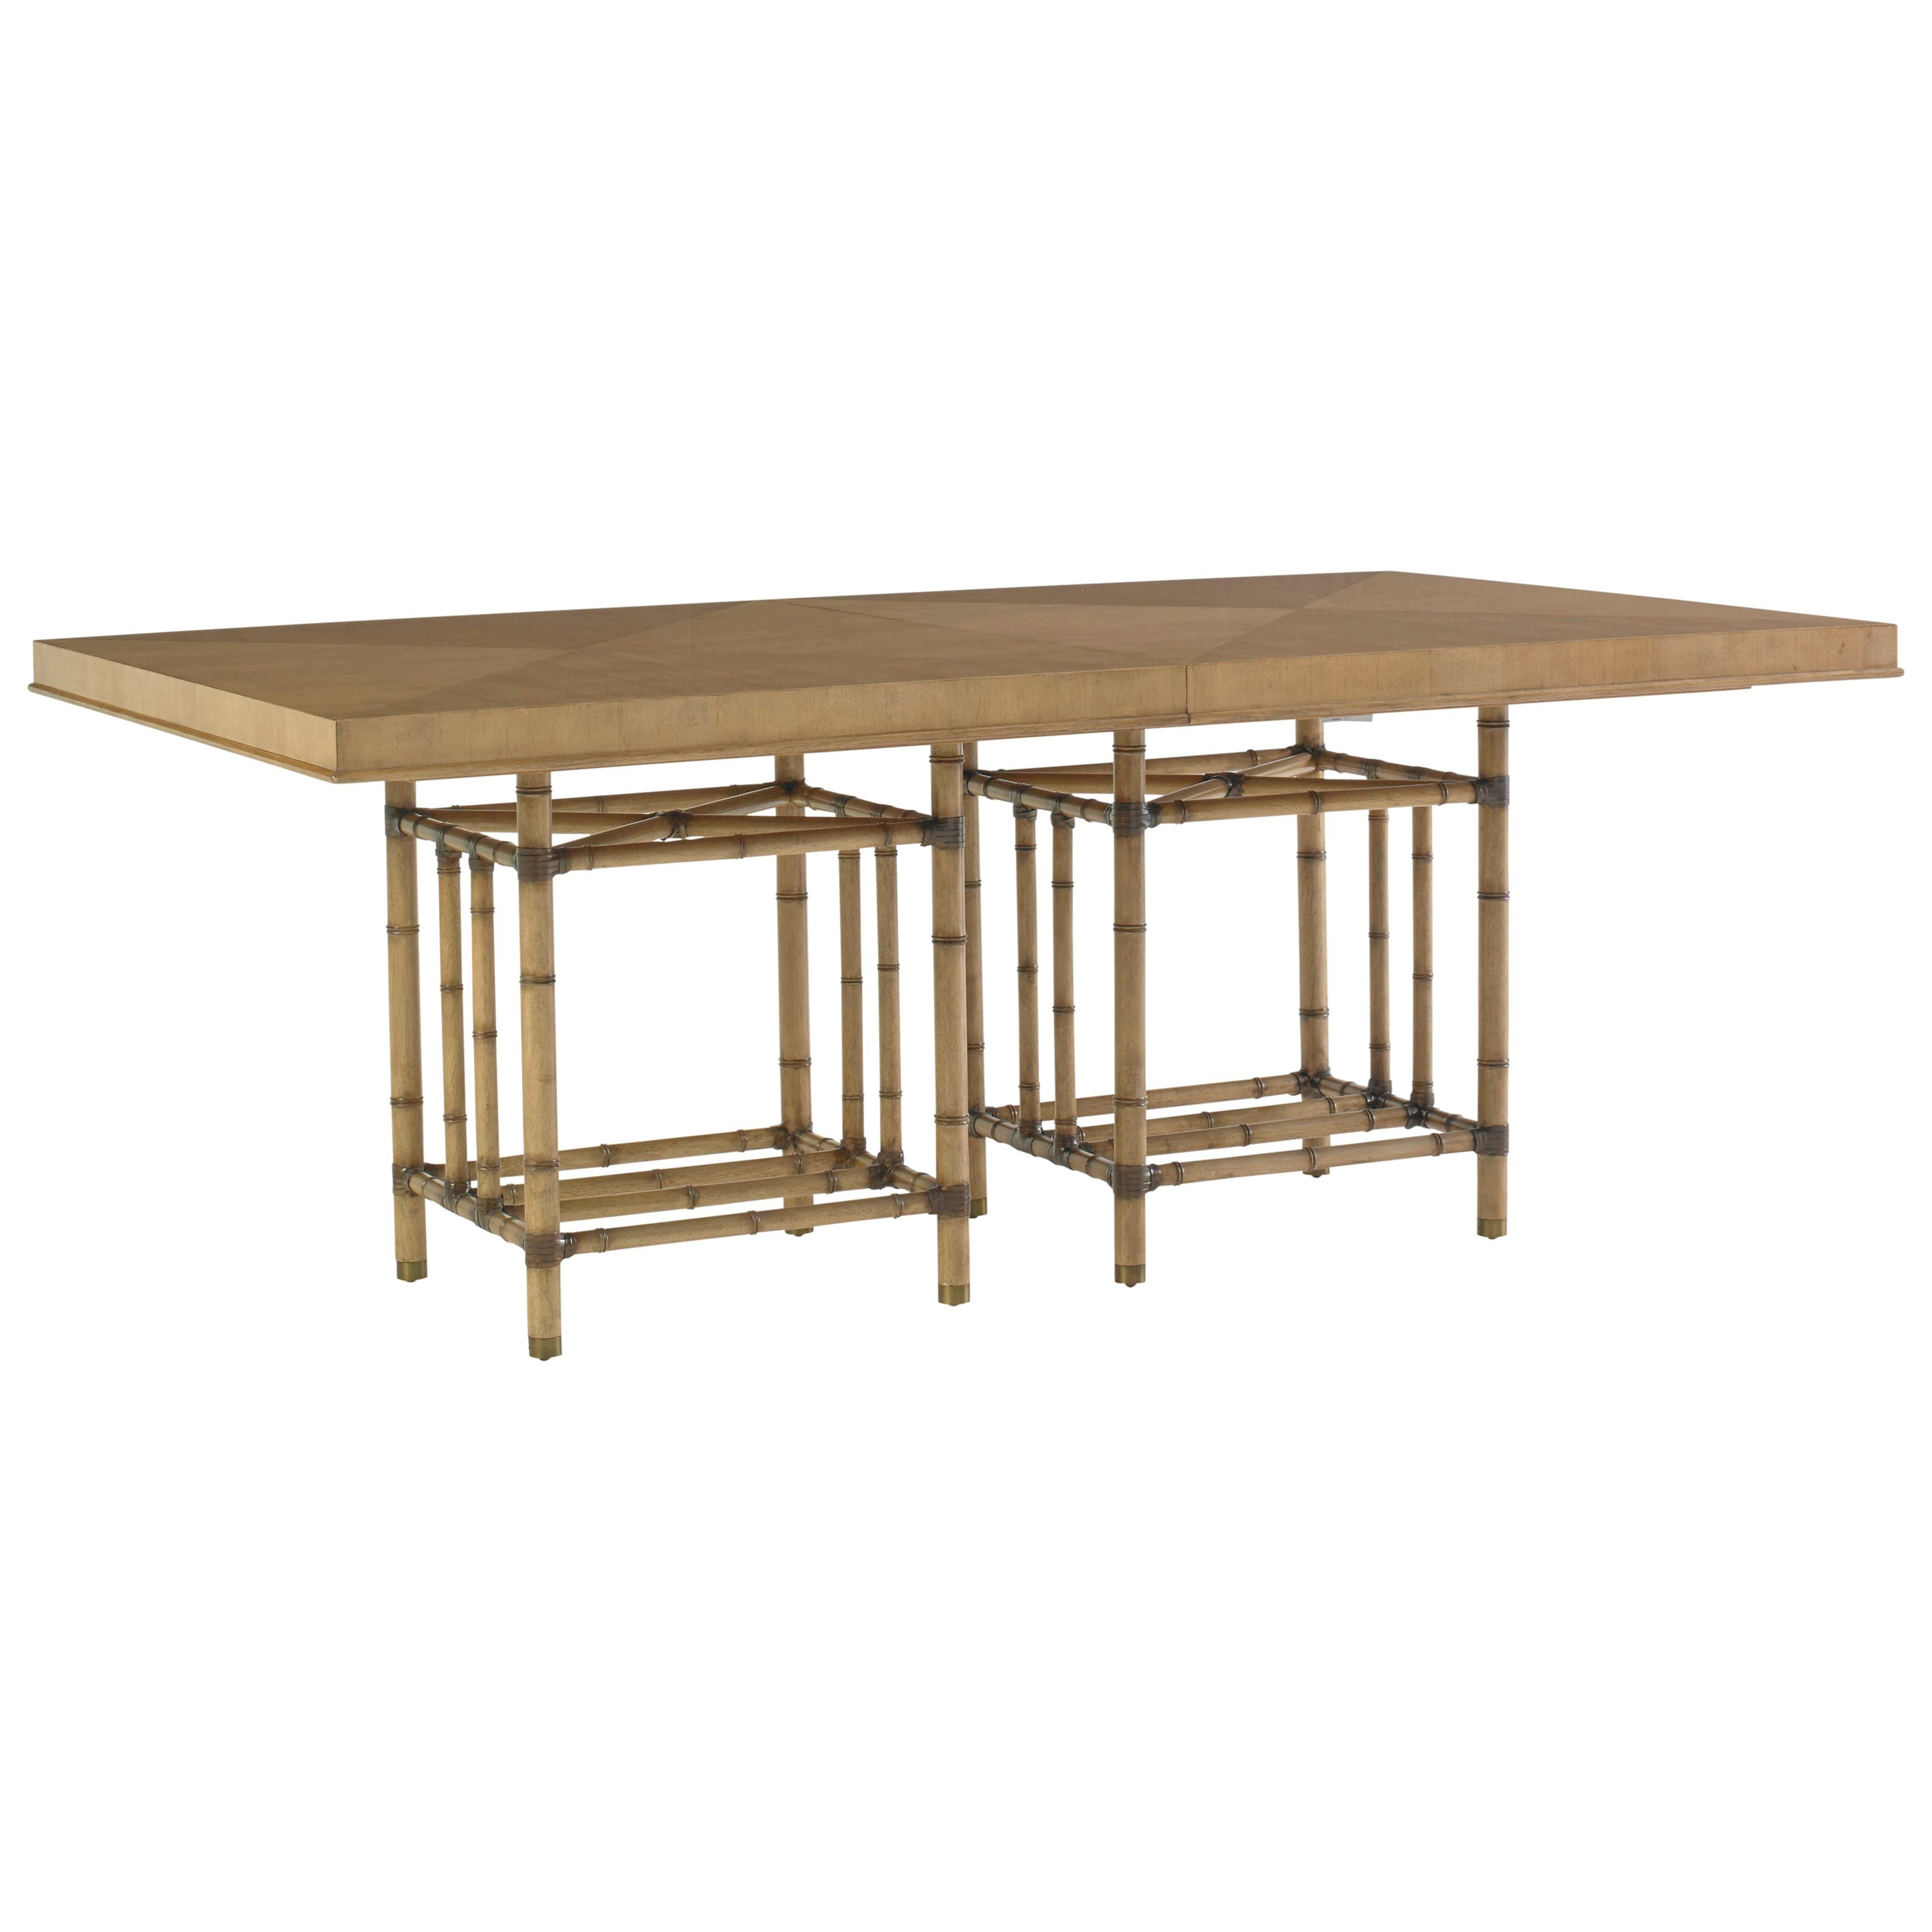 Tommy Bahama Home Twin Palms Caneel Bay Dining Table - Item Number: 558-876C